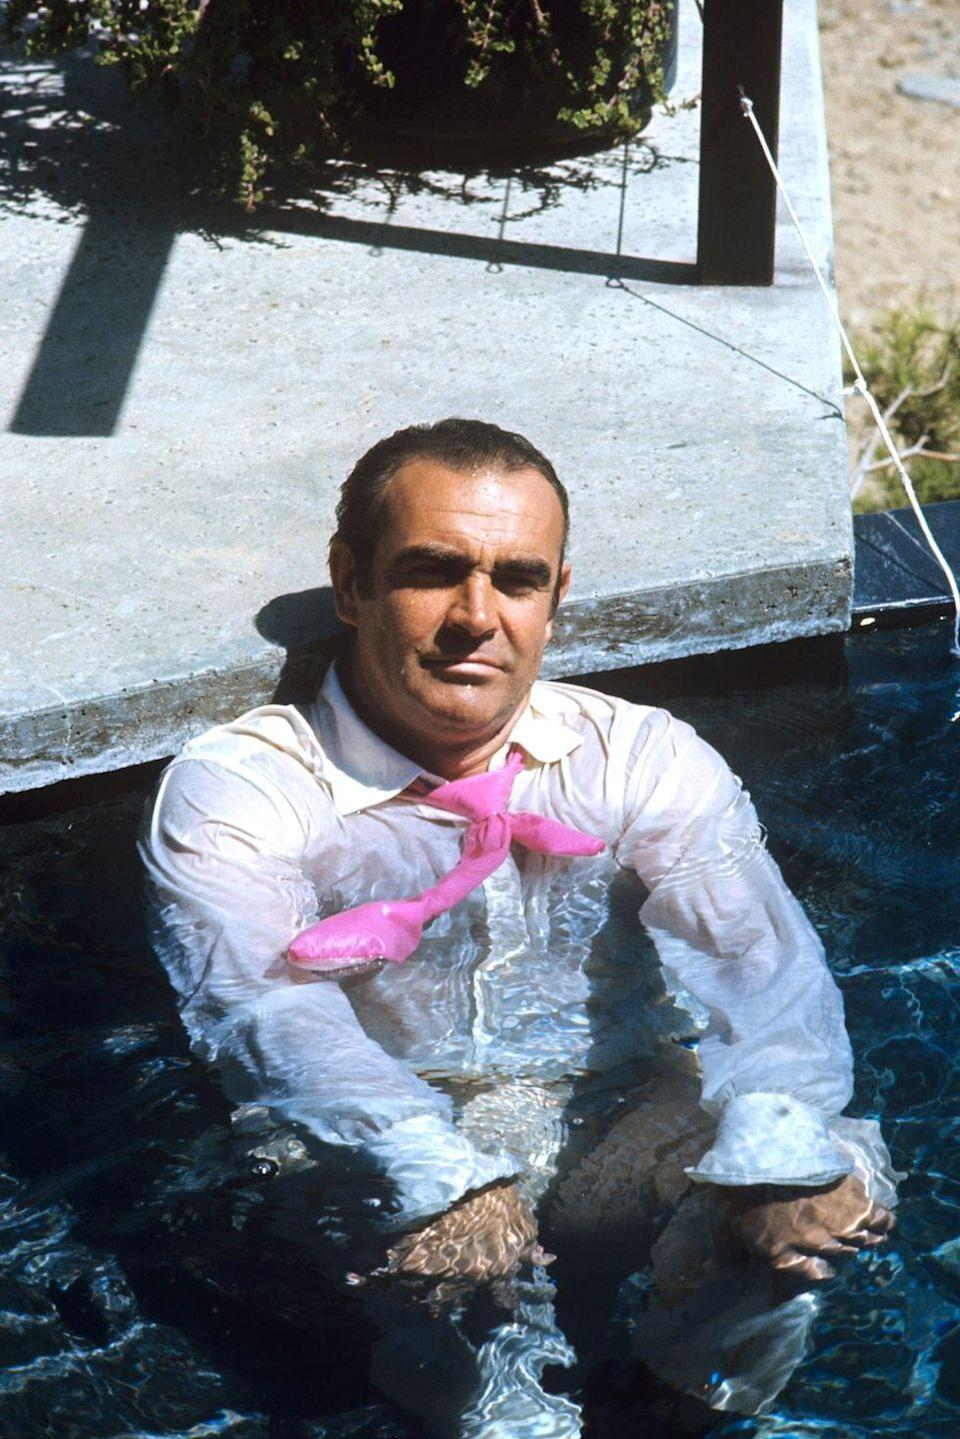 <p>Sean Connery takes a break in a swimming pool on the set of the James Bond film <em>Diamonds Are Forever</em> in Las Vegas in 1971.</p>